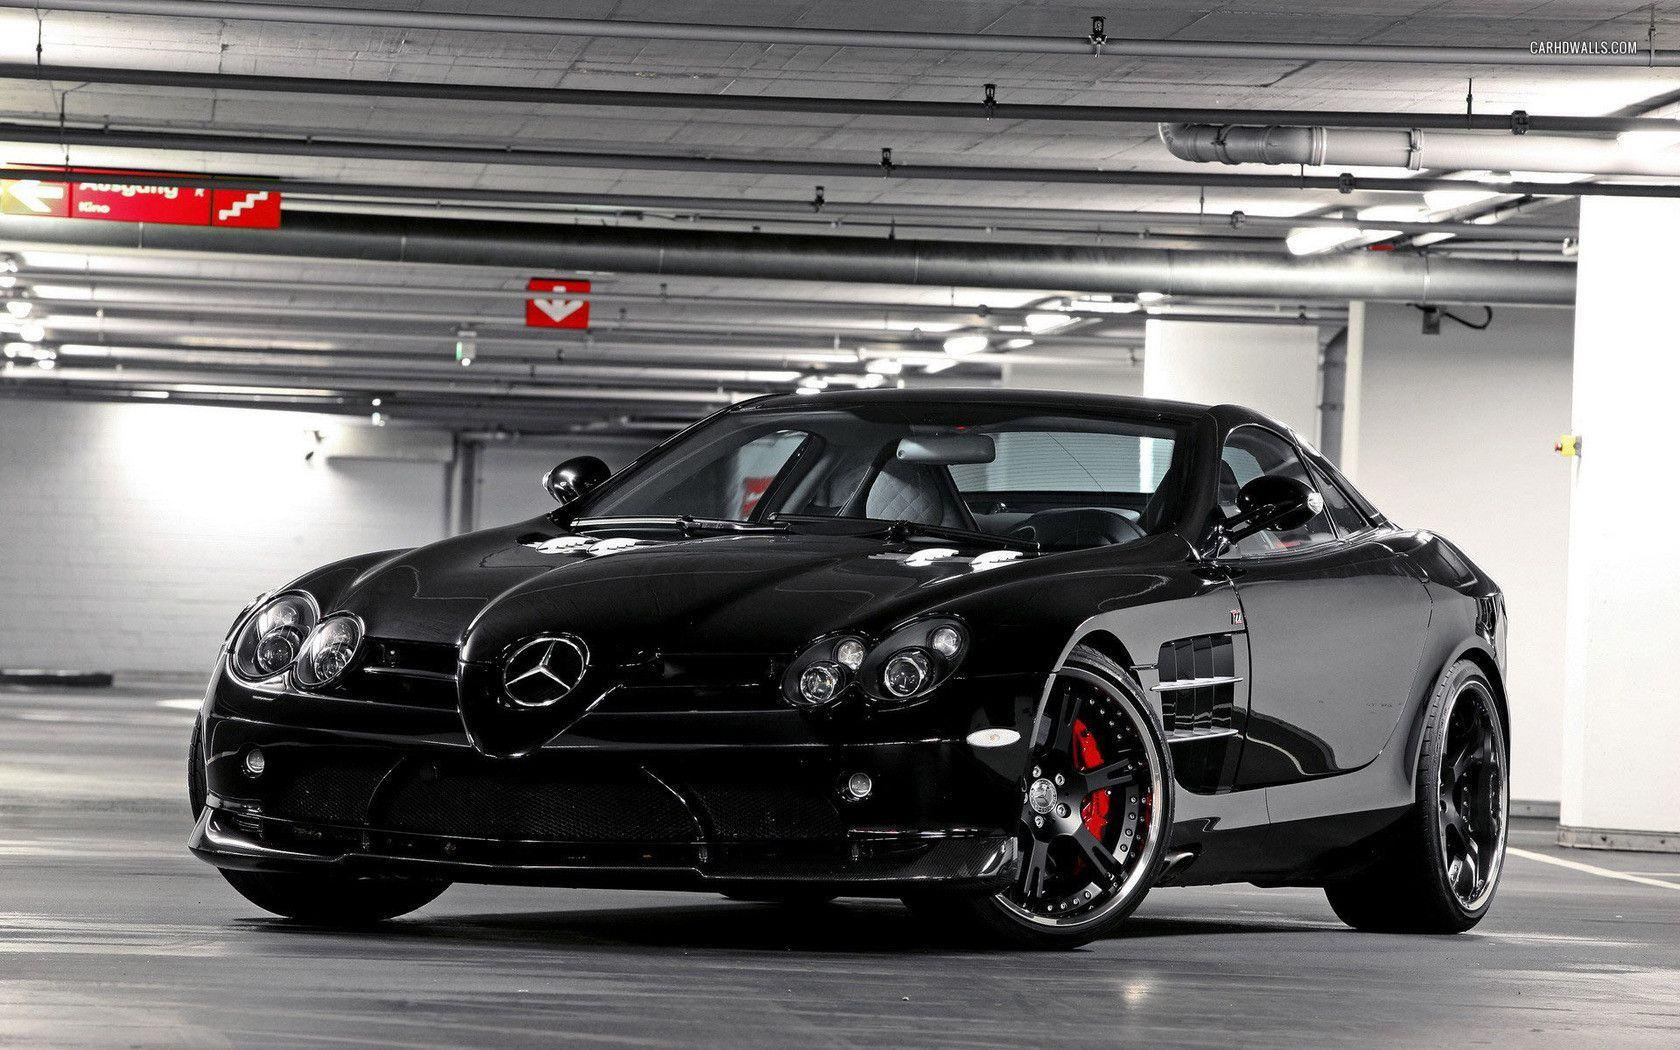 mercedes benz slr mclaren wallpapers wallpaper cave. Black Bedroom Furniture Sets. Home Design Ideas